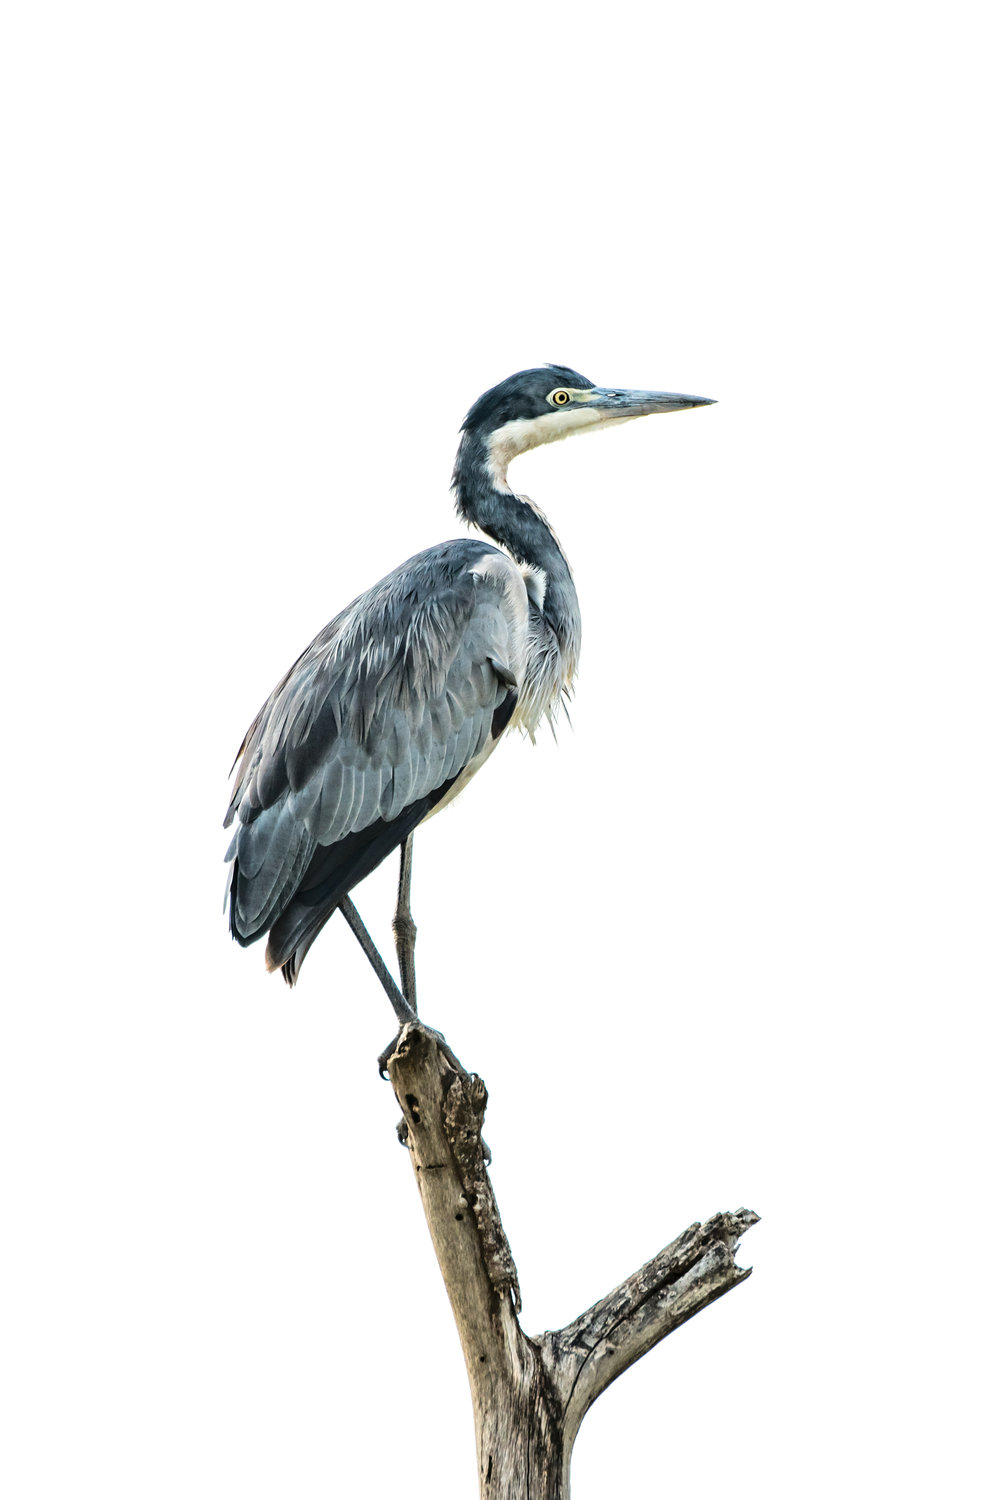 Black-headed heron perched on dead tree stump